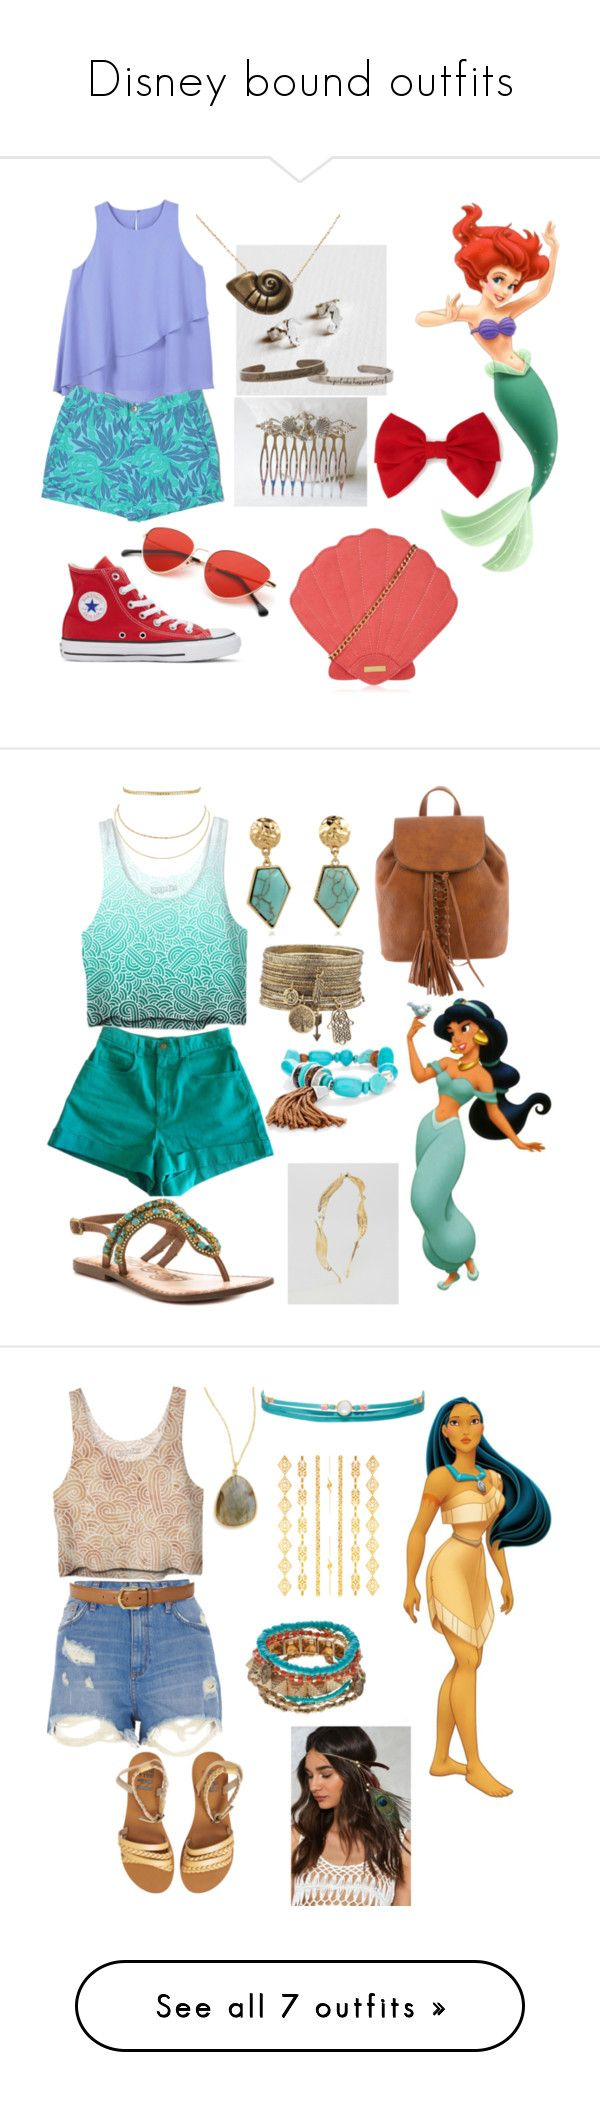 """Disney bound outfits"" by noworneverbabe on Polyvore featuring Banana Republic, MANGO, Amanda Coleman, Disney, Converse, Skinnydip, Forever 21, American Apparel, Aqua and Naughty Monkey"